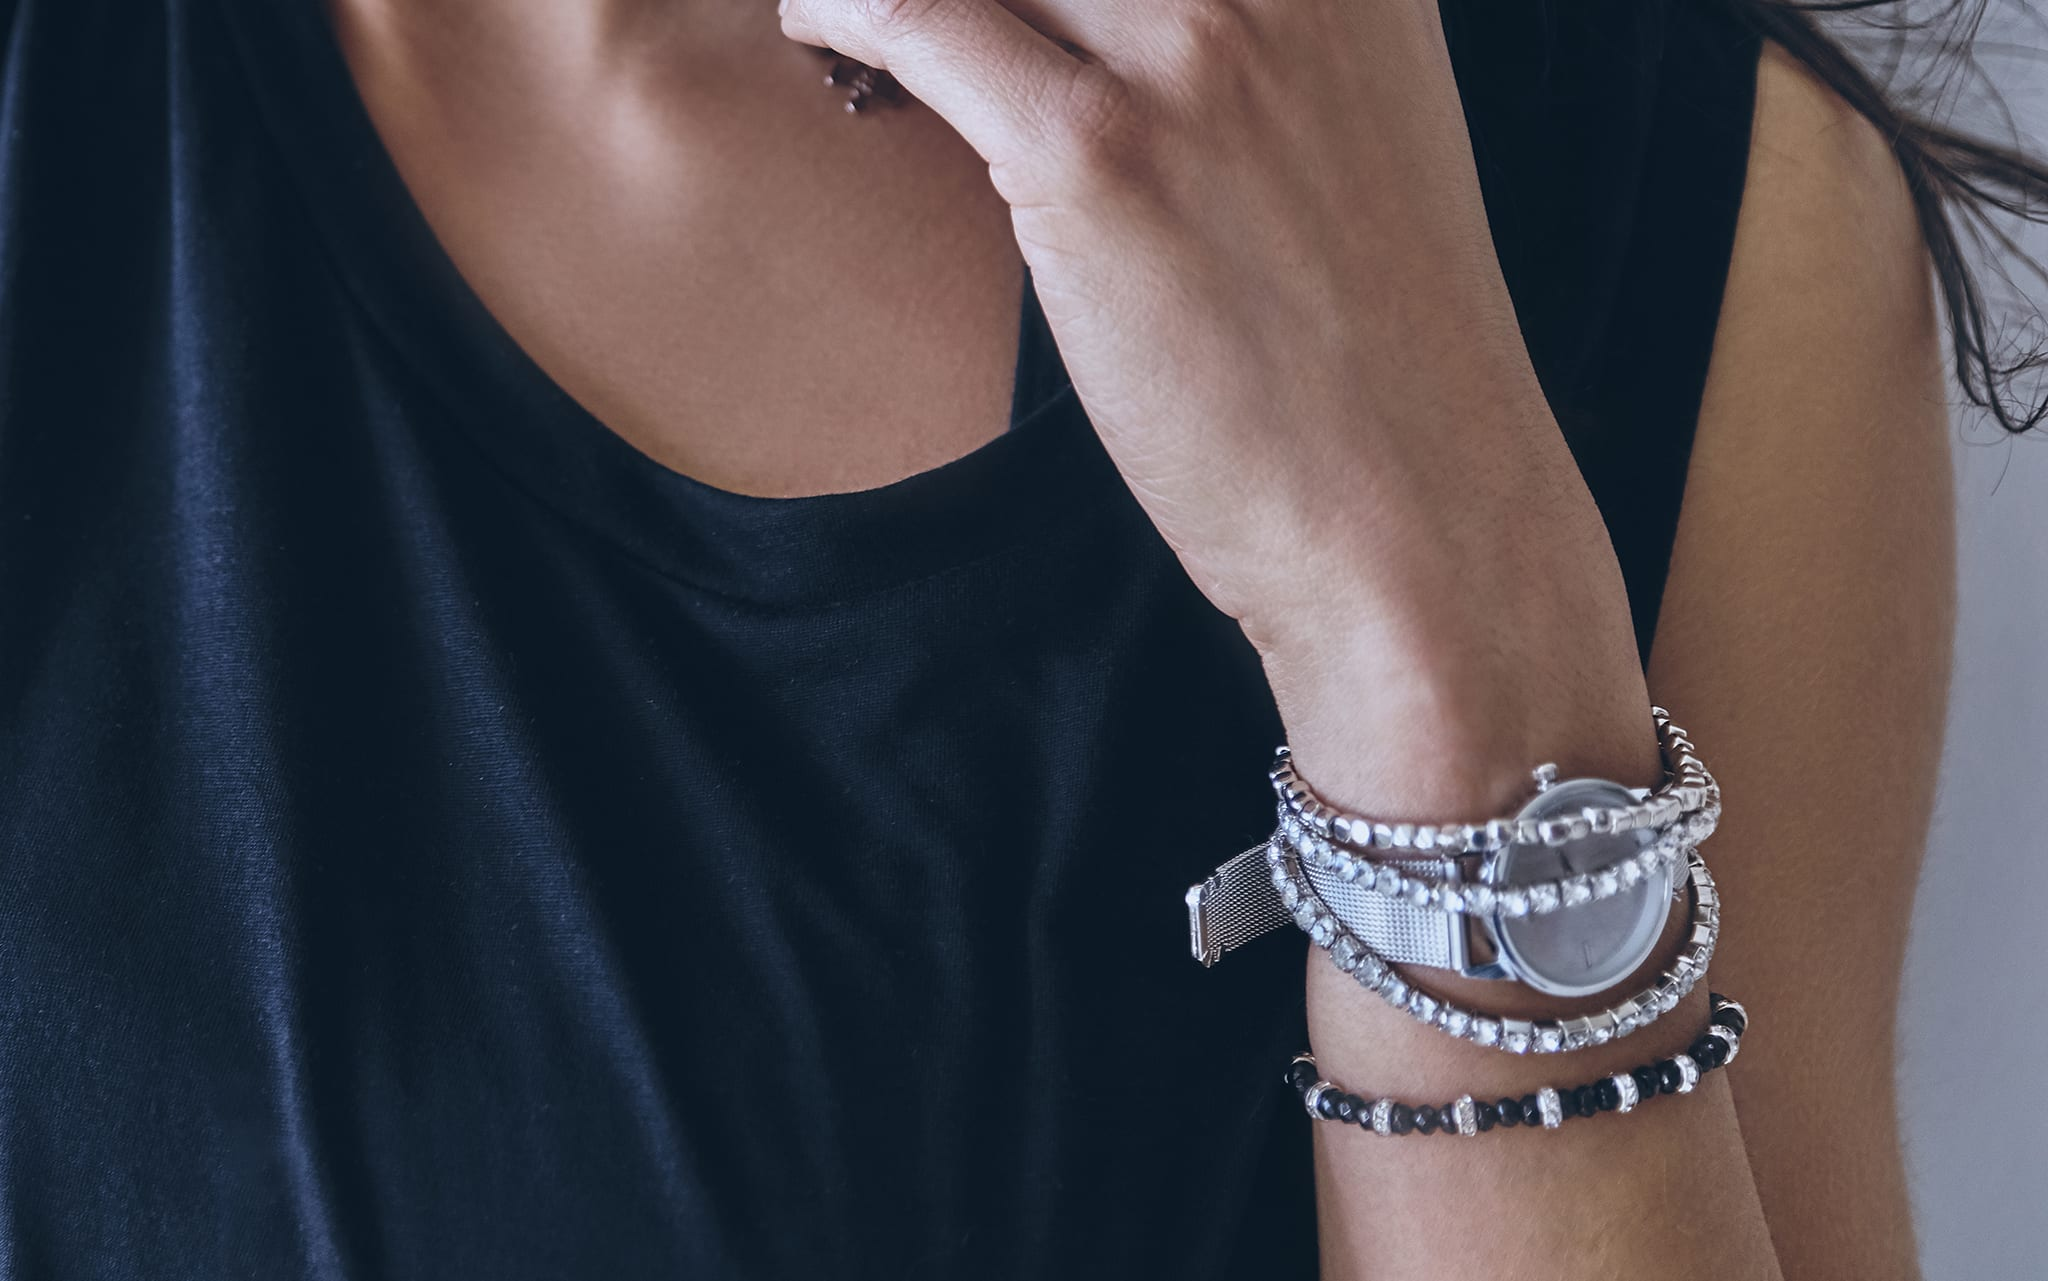 look to ramzs to find the signature bracelet you have been looking for